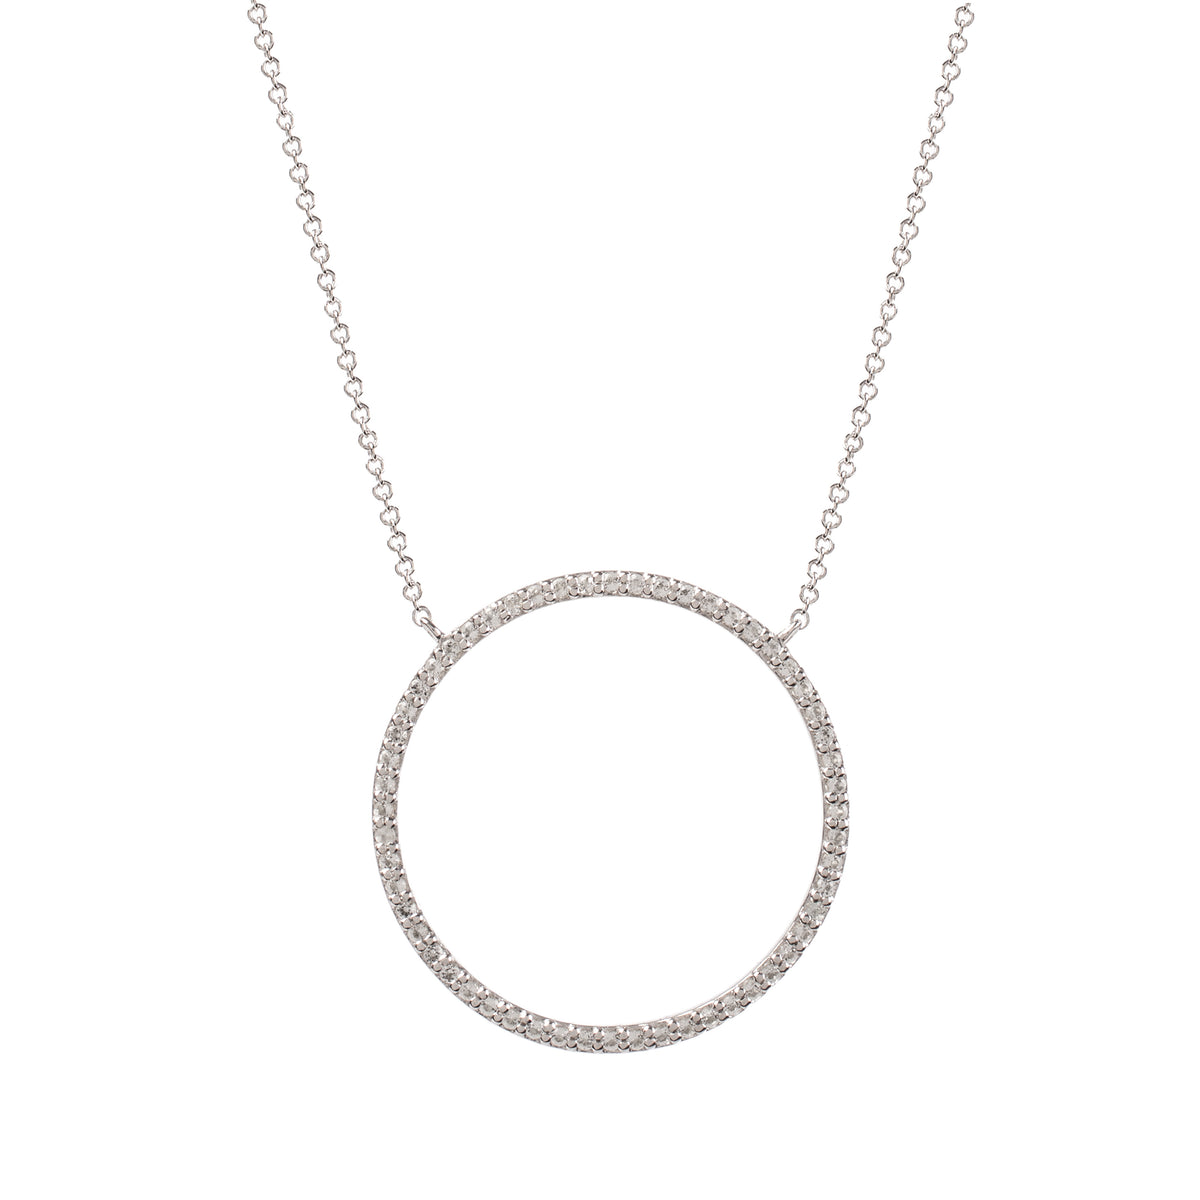 Nova White Gold White Topaz Infinity Necklace